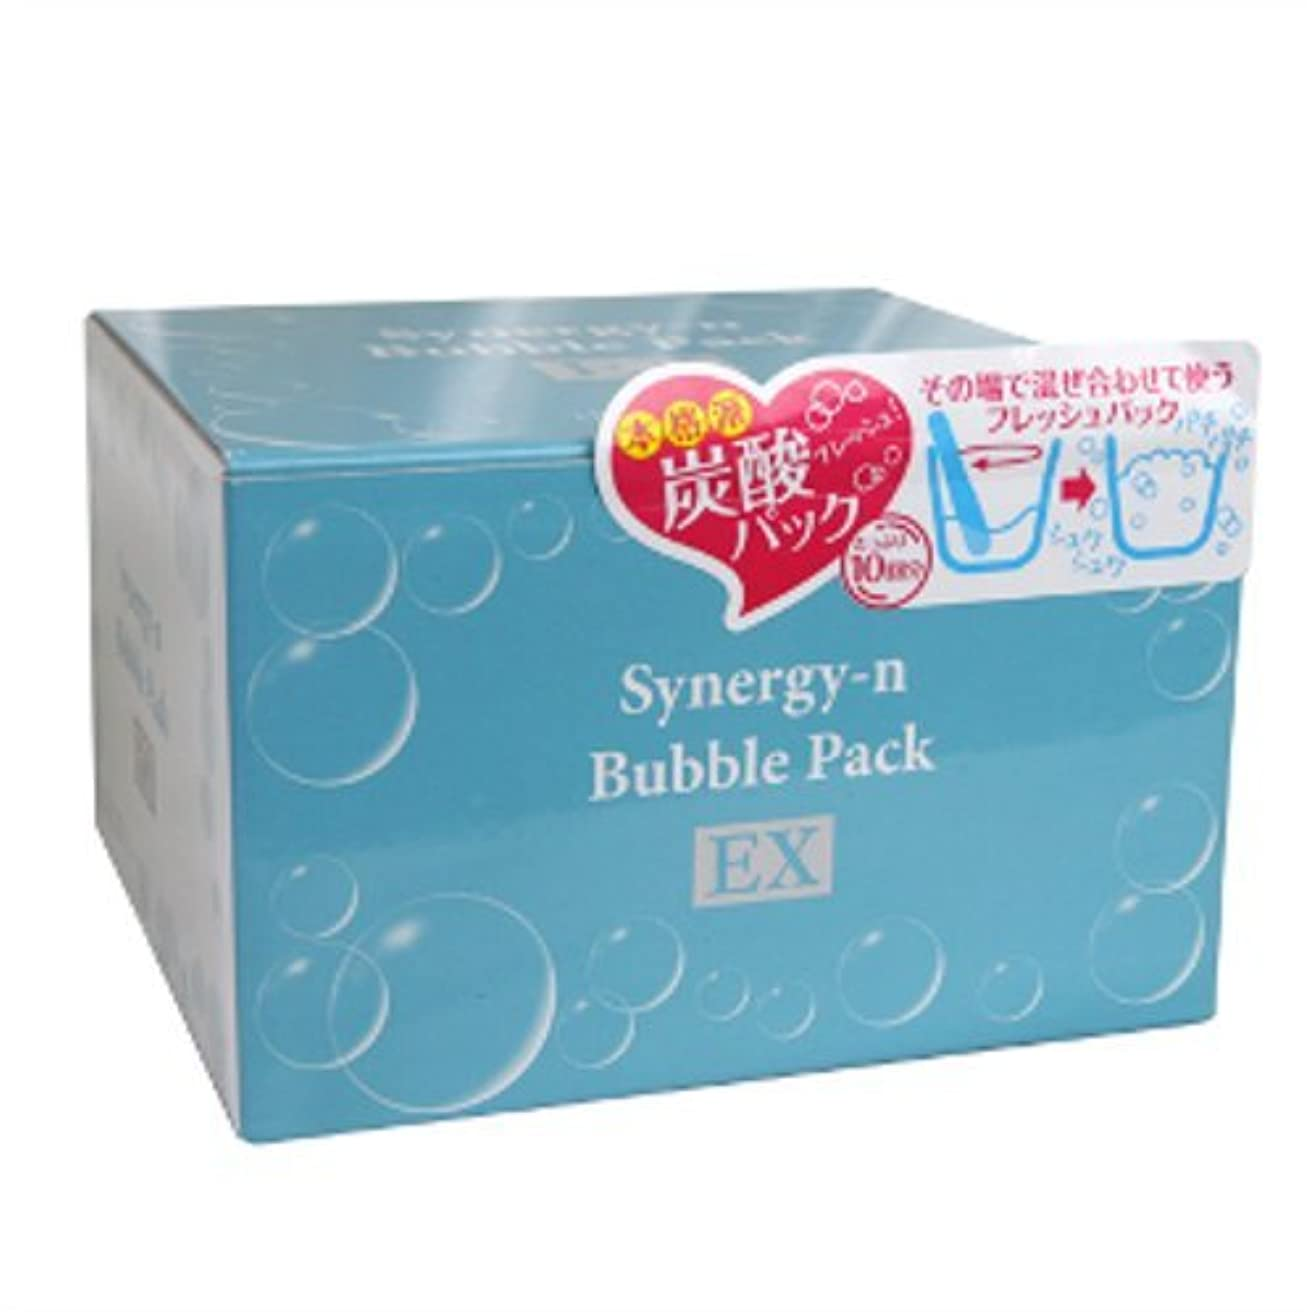 Synergy-n bubble face pack